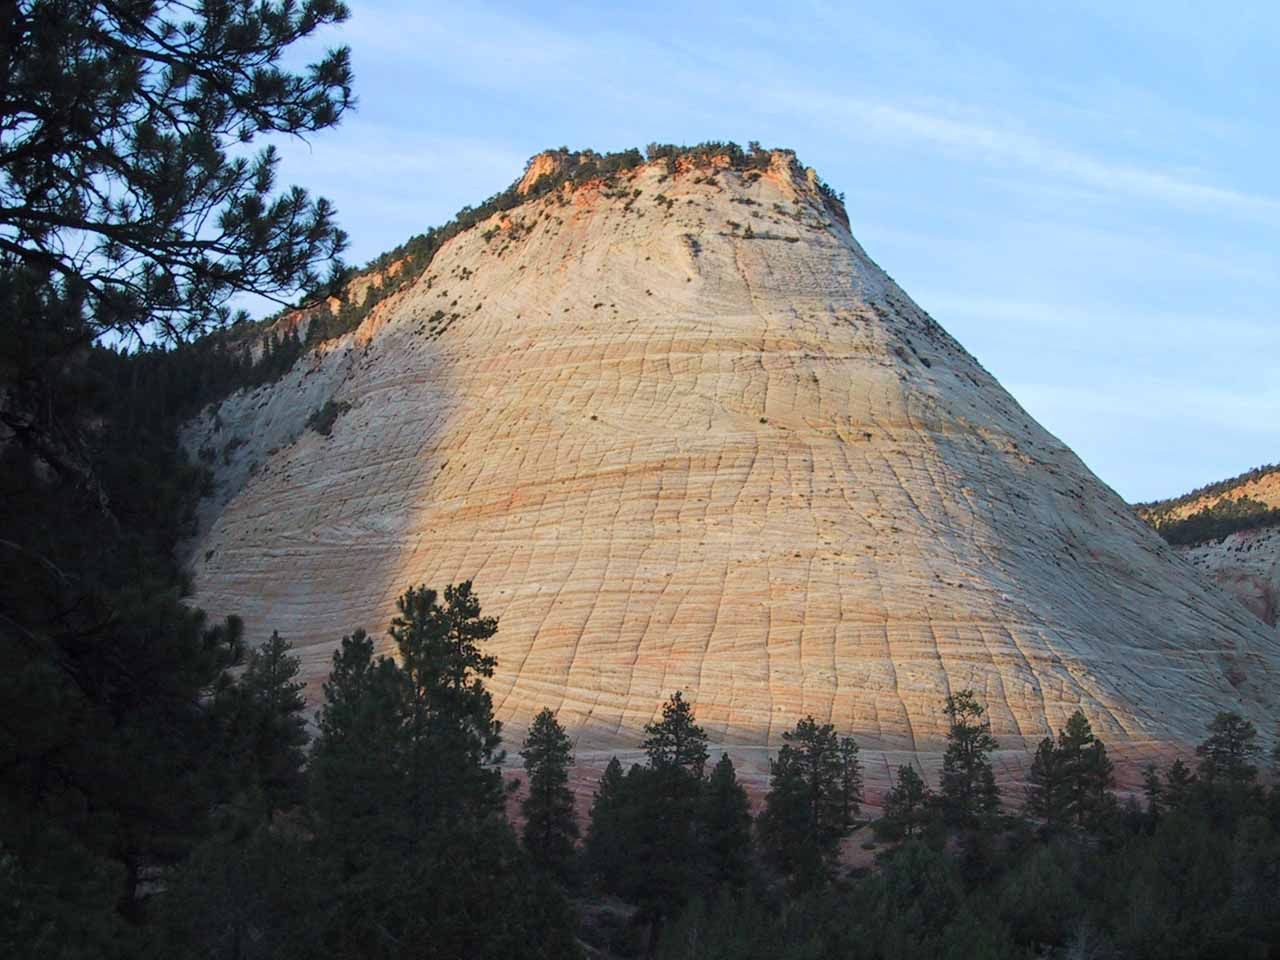 On our way out of Zion National Park's east entrance, we noticed this cool formation known as the Checkerboard Mesa, which was best seen early in the morning when it would get soft glow